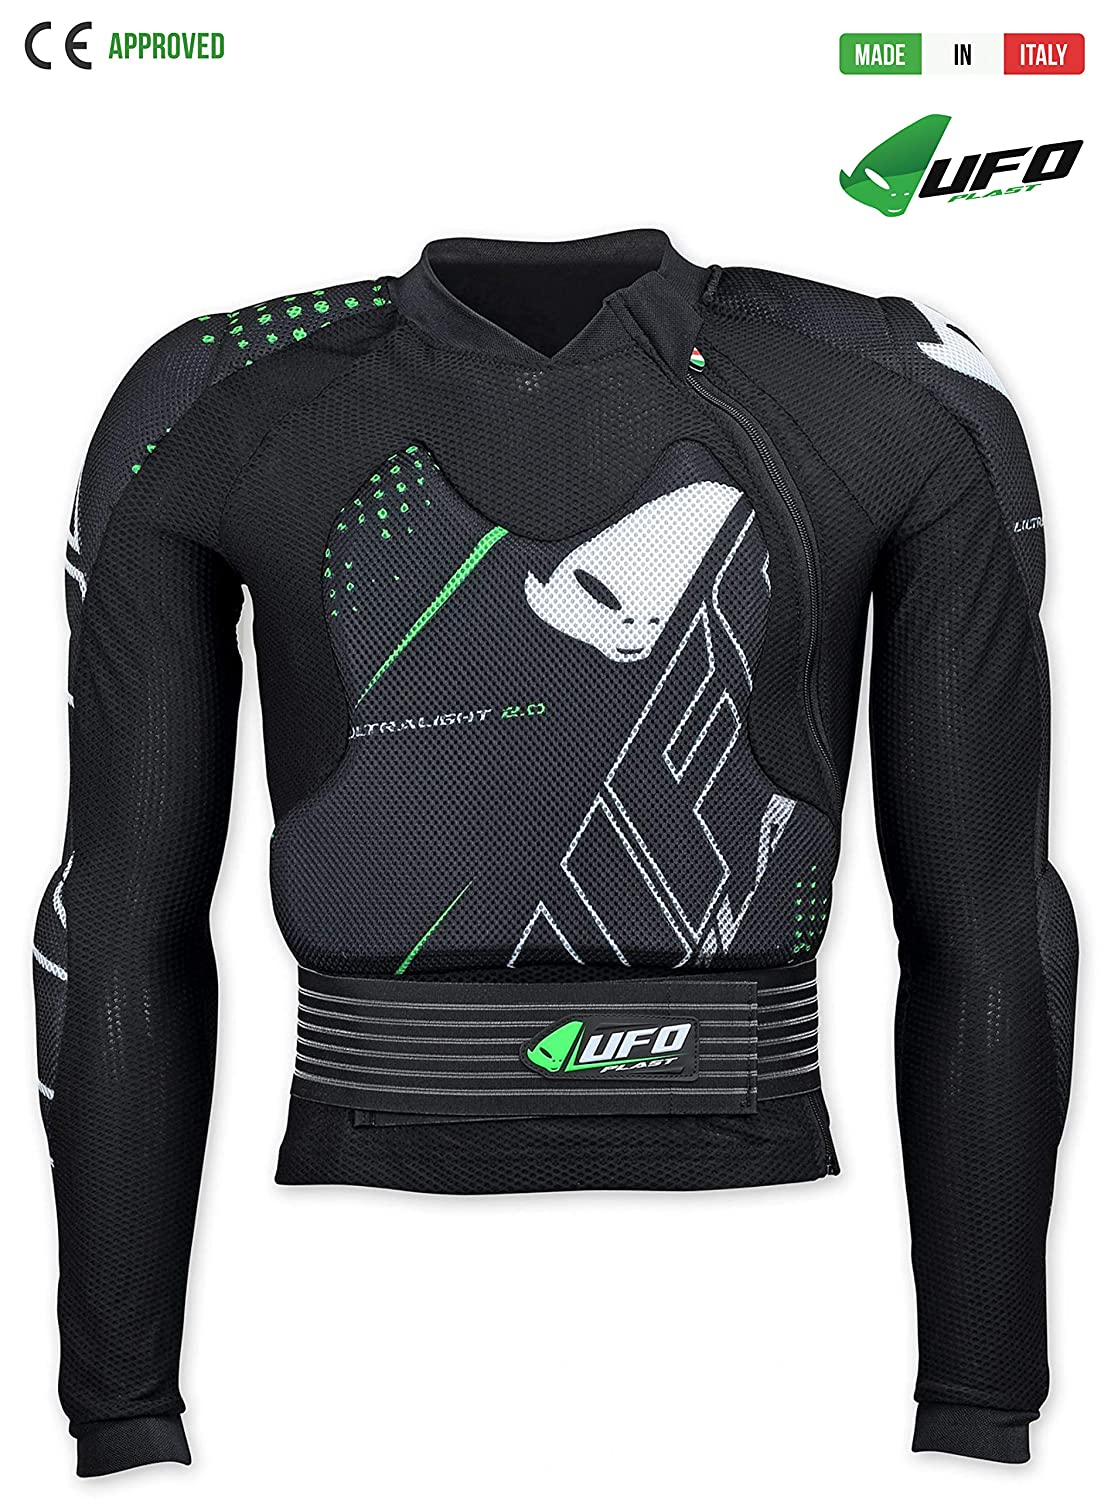 L//XL UFO PLAST Made in Italy PE02375 ULTRALIGHT 2.0 Armored Body Protector//Size